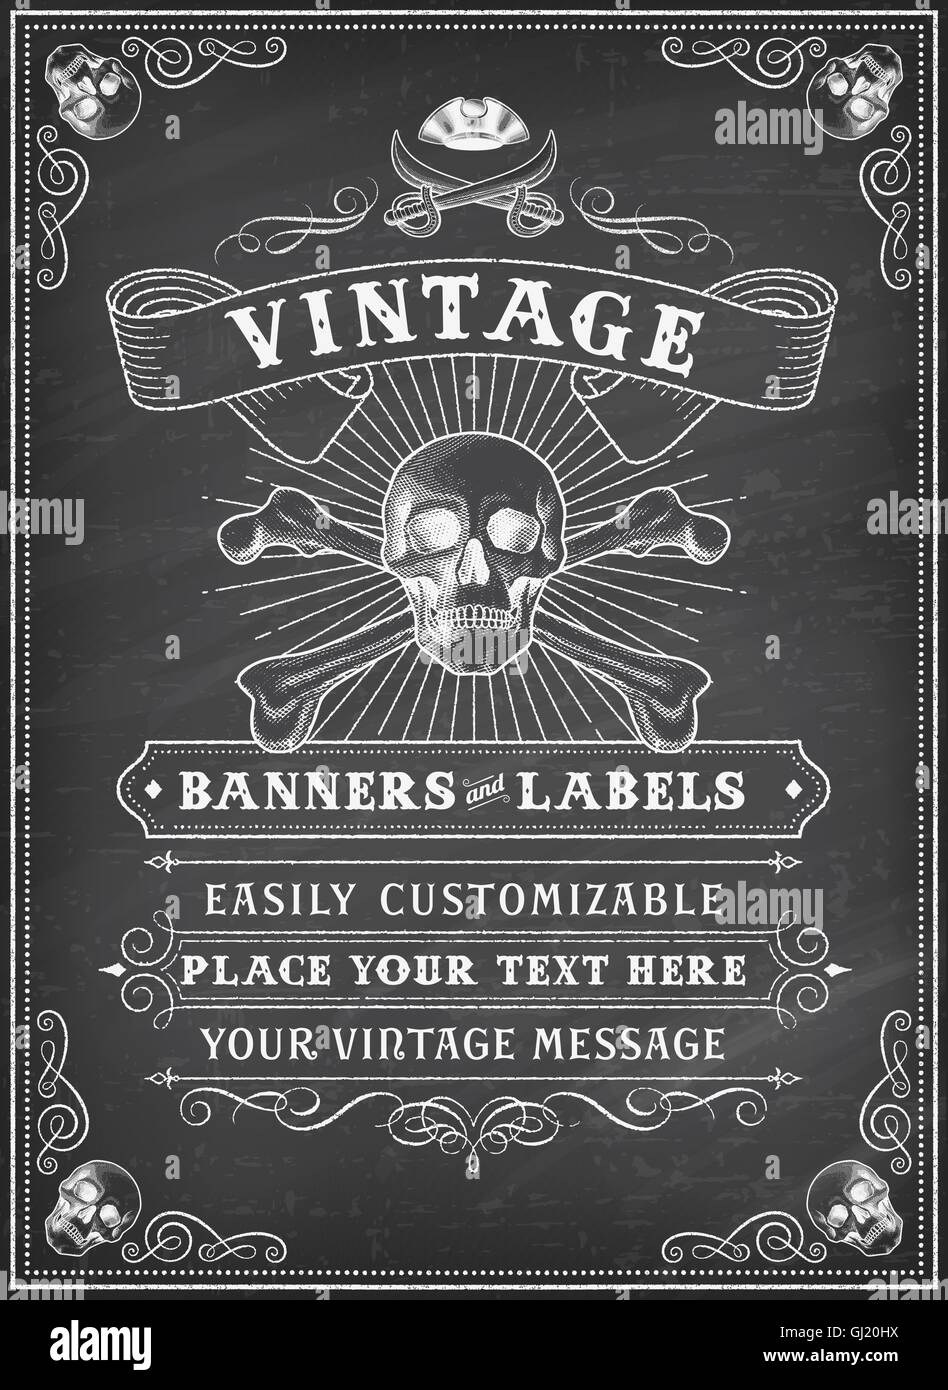 Vintage Looking Invite Template for a Party or Event with Death or Pirate Theme on a chalkboard background - Stock Image